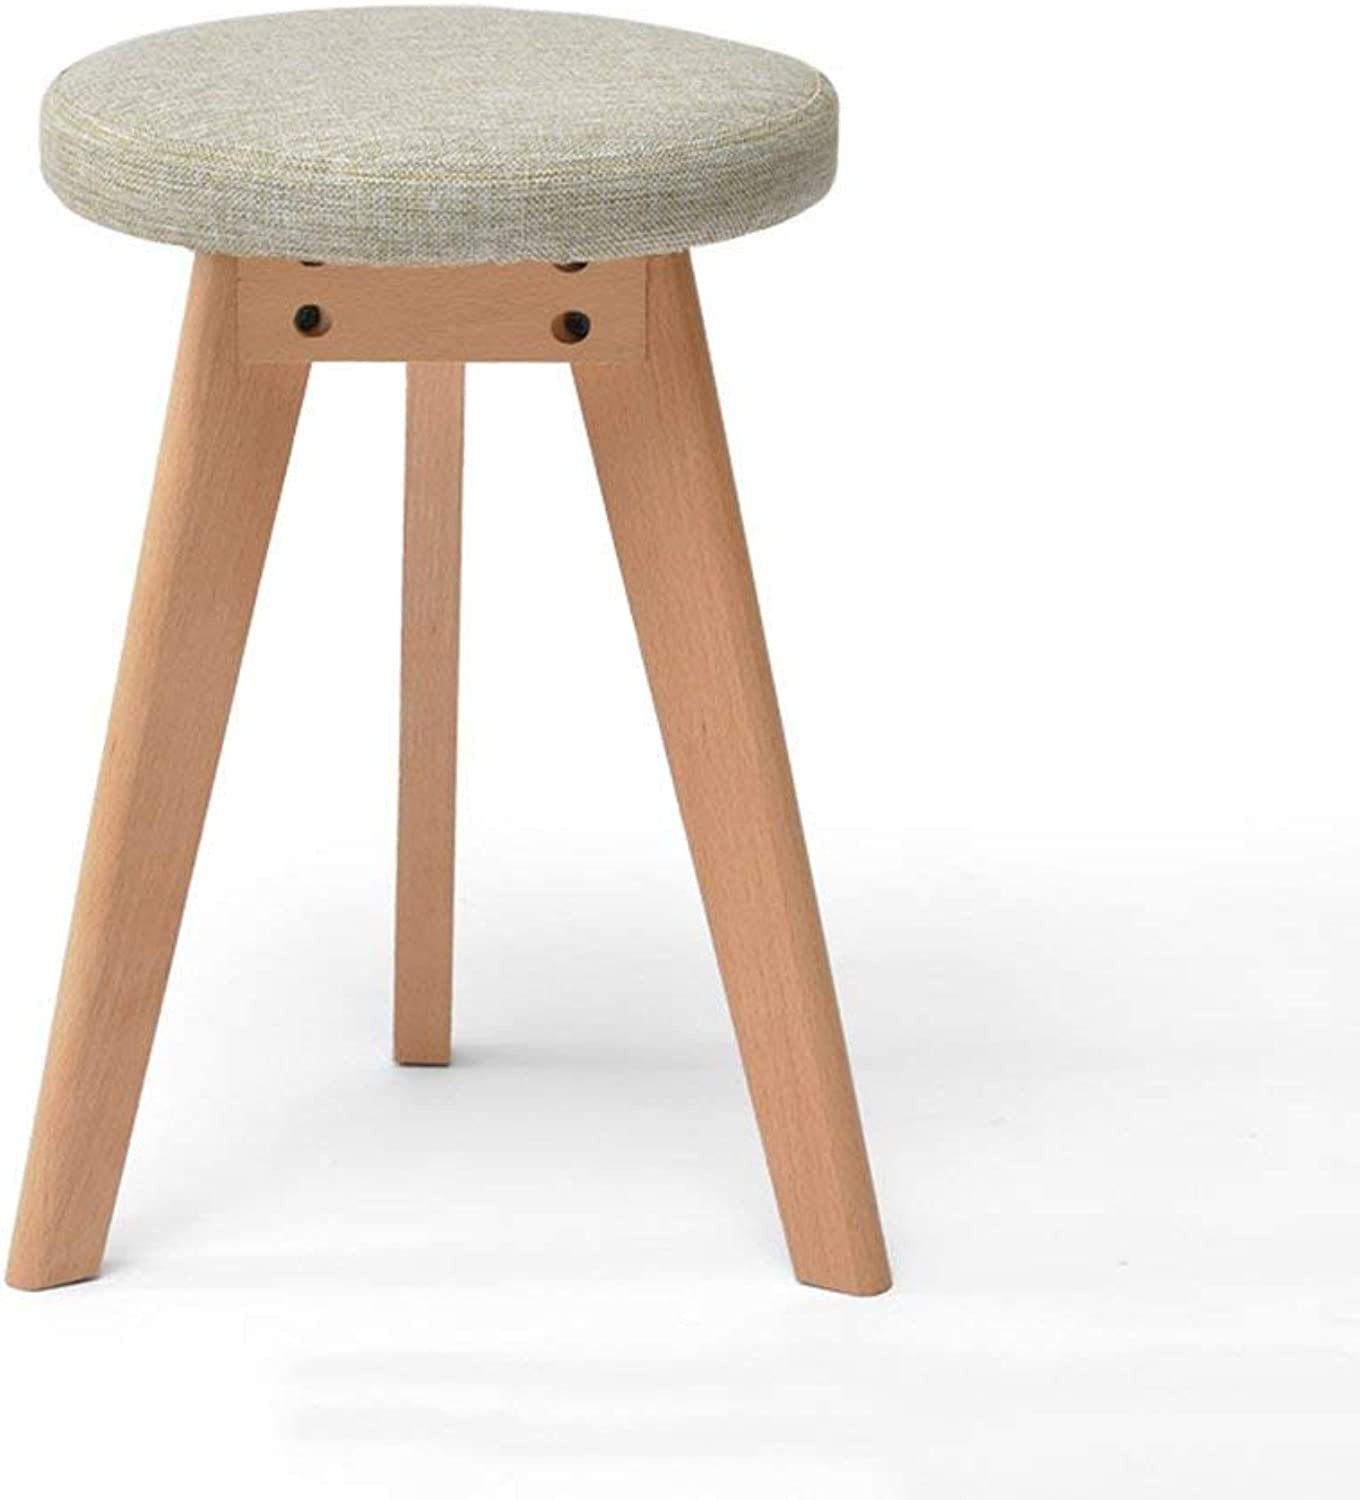 JZX Chair- Bar Stool Solid Wood + Fabric + Pu Creative Fashion Non-Slip Durable Household Practical Stool